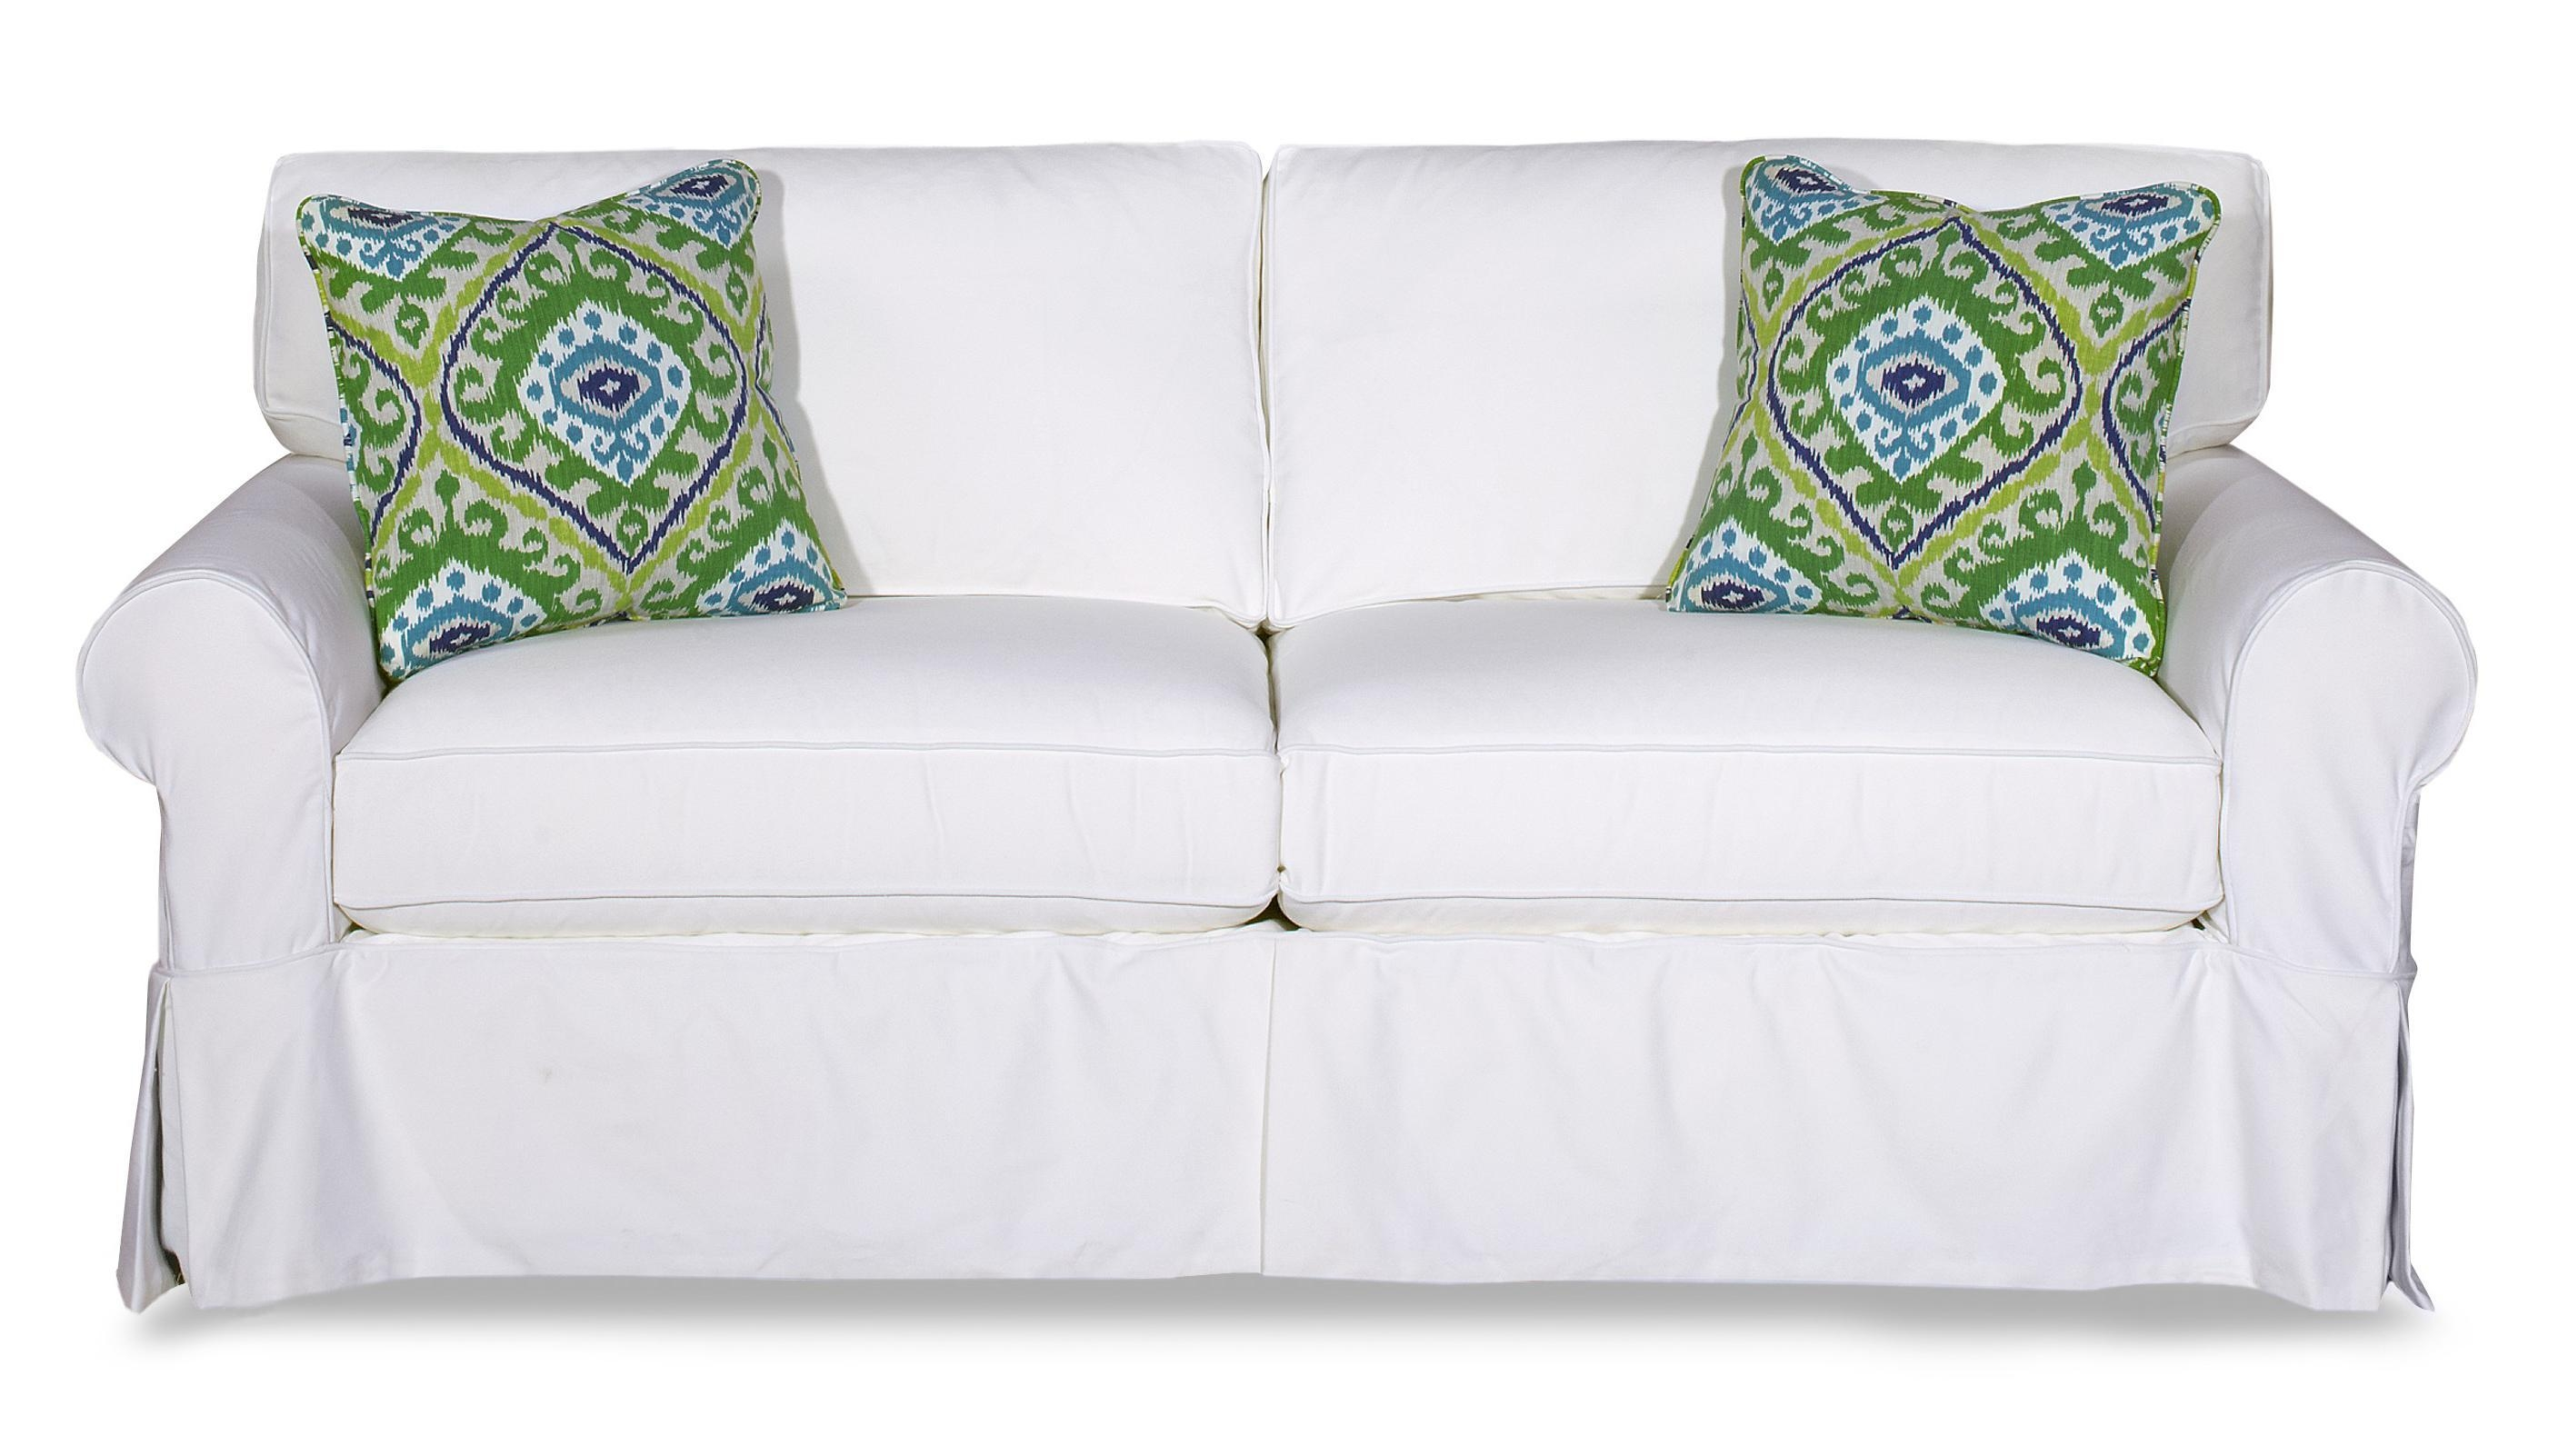 Cottage Style Sofas And Chairs   Tehranmix Decoration With Regard To Cottage Style Sofas And Chairs (View 12 of 20)